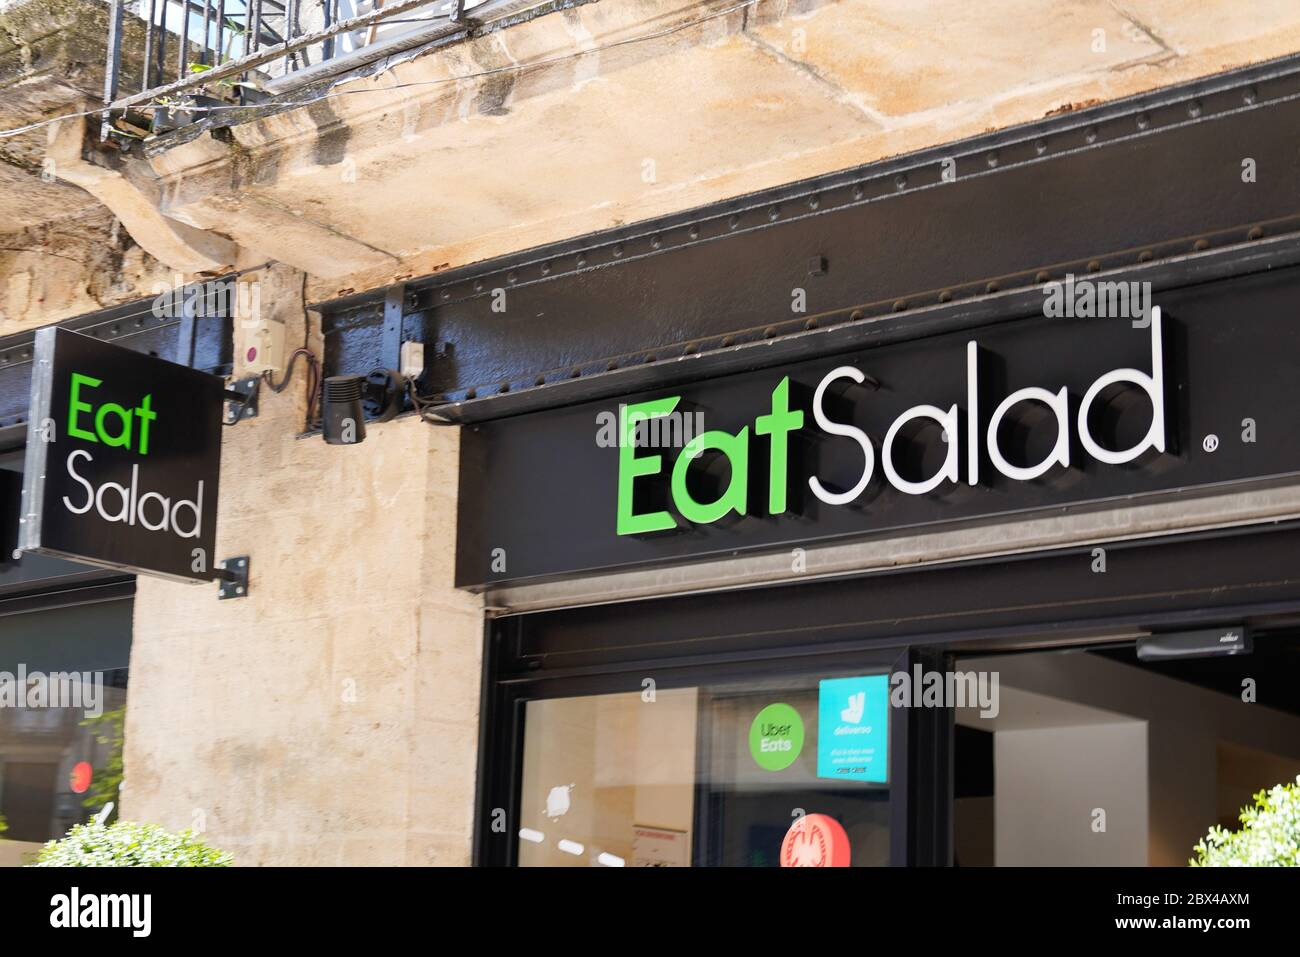 Bordeaux Aquitaine France 06 01 2020 Eat Salad Logo Sign Of Modern Restaurant Take Away On Fastfood Building Stock Photo Alamy